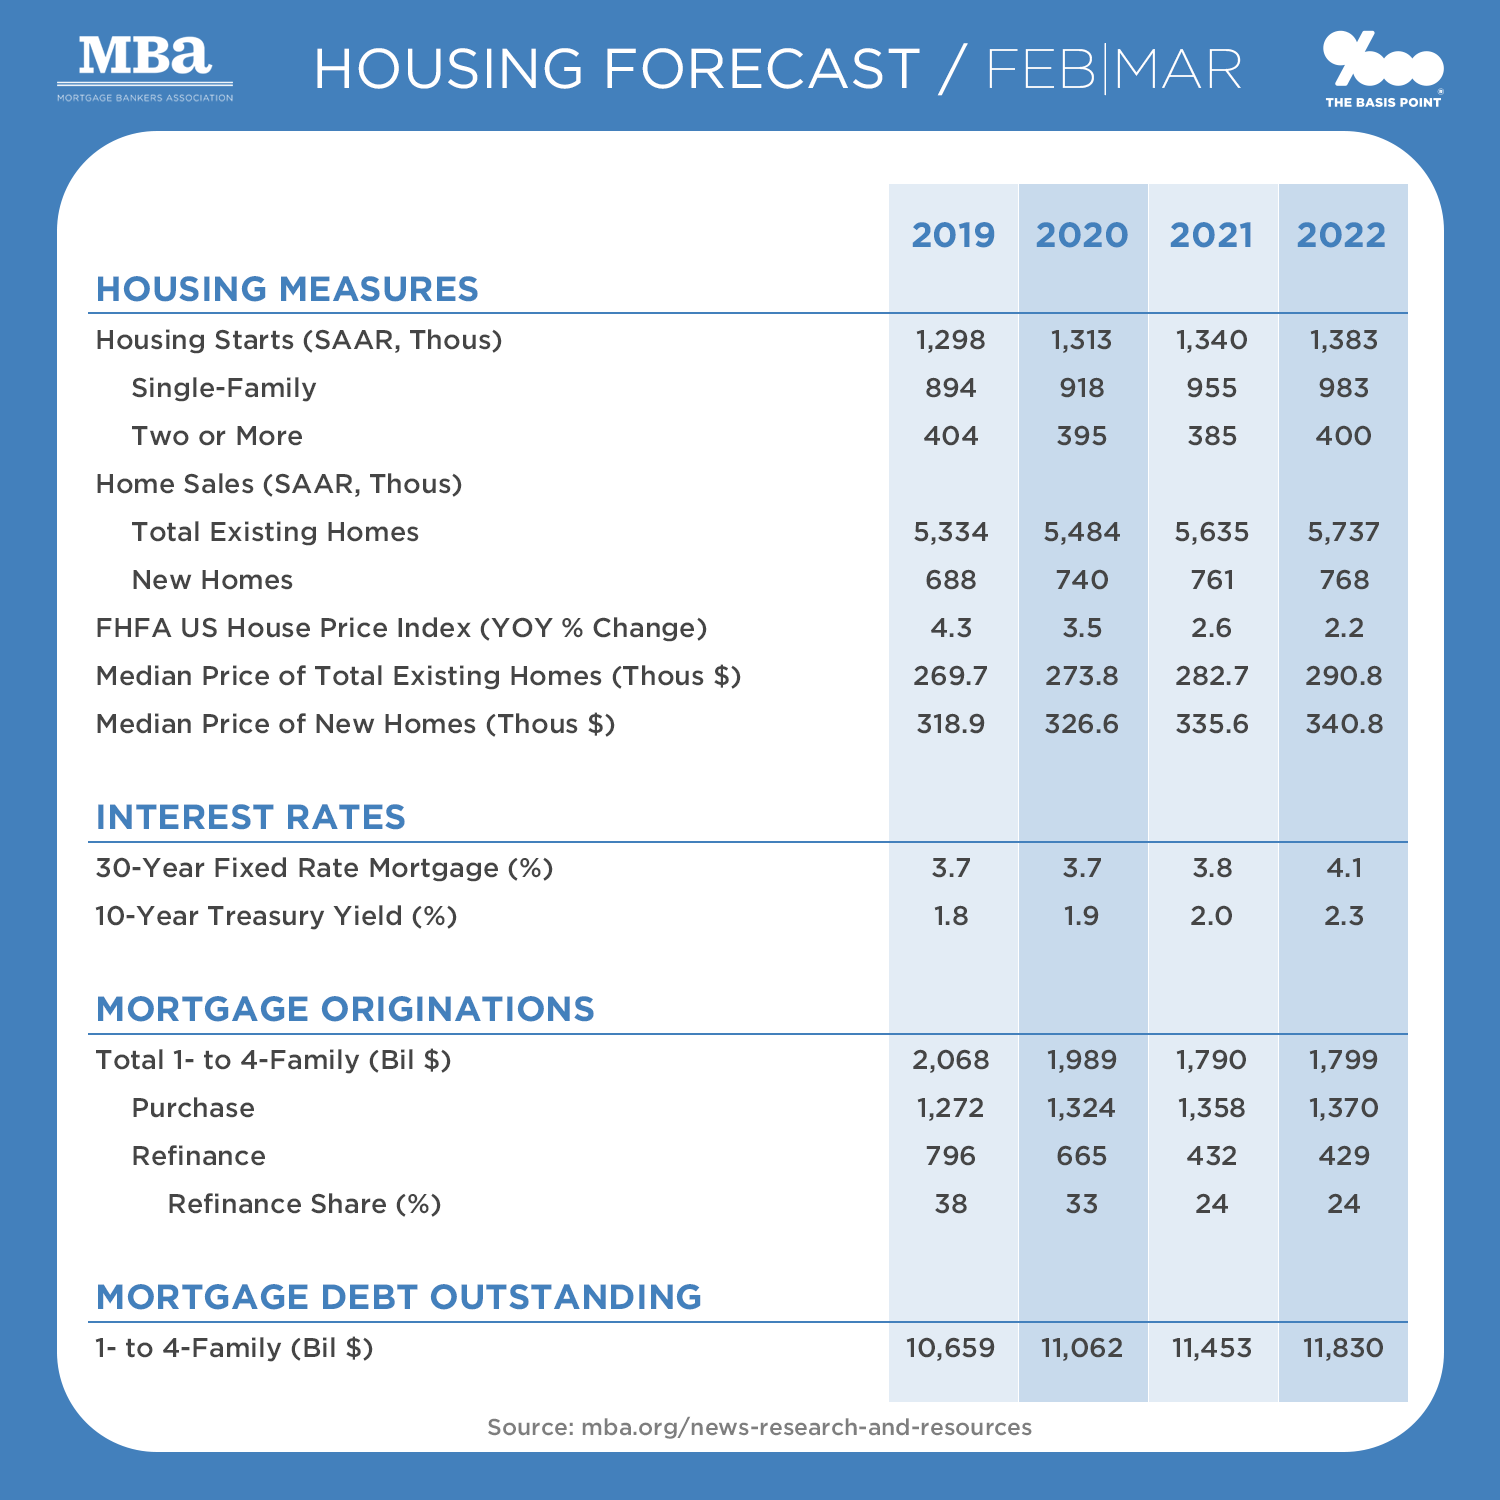 Size of U.S. Mortgage Market In 2019-2022 and Home Sales Estimates from the MBA as of February - The Basis Point